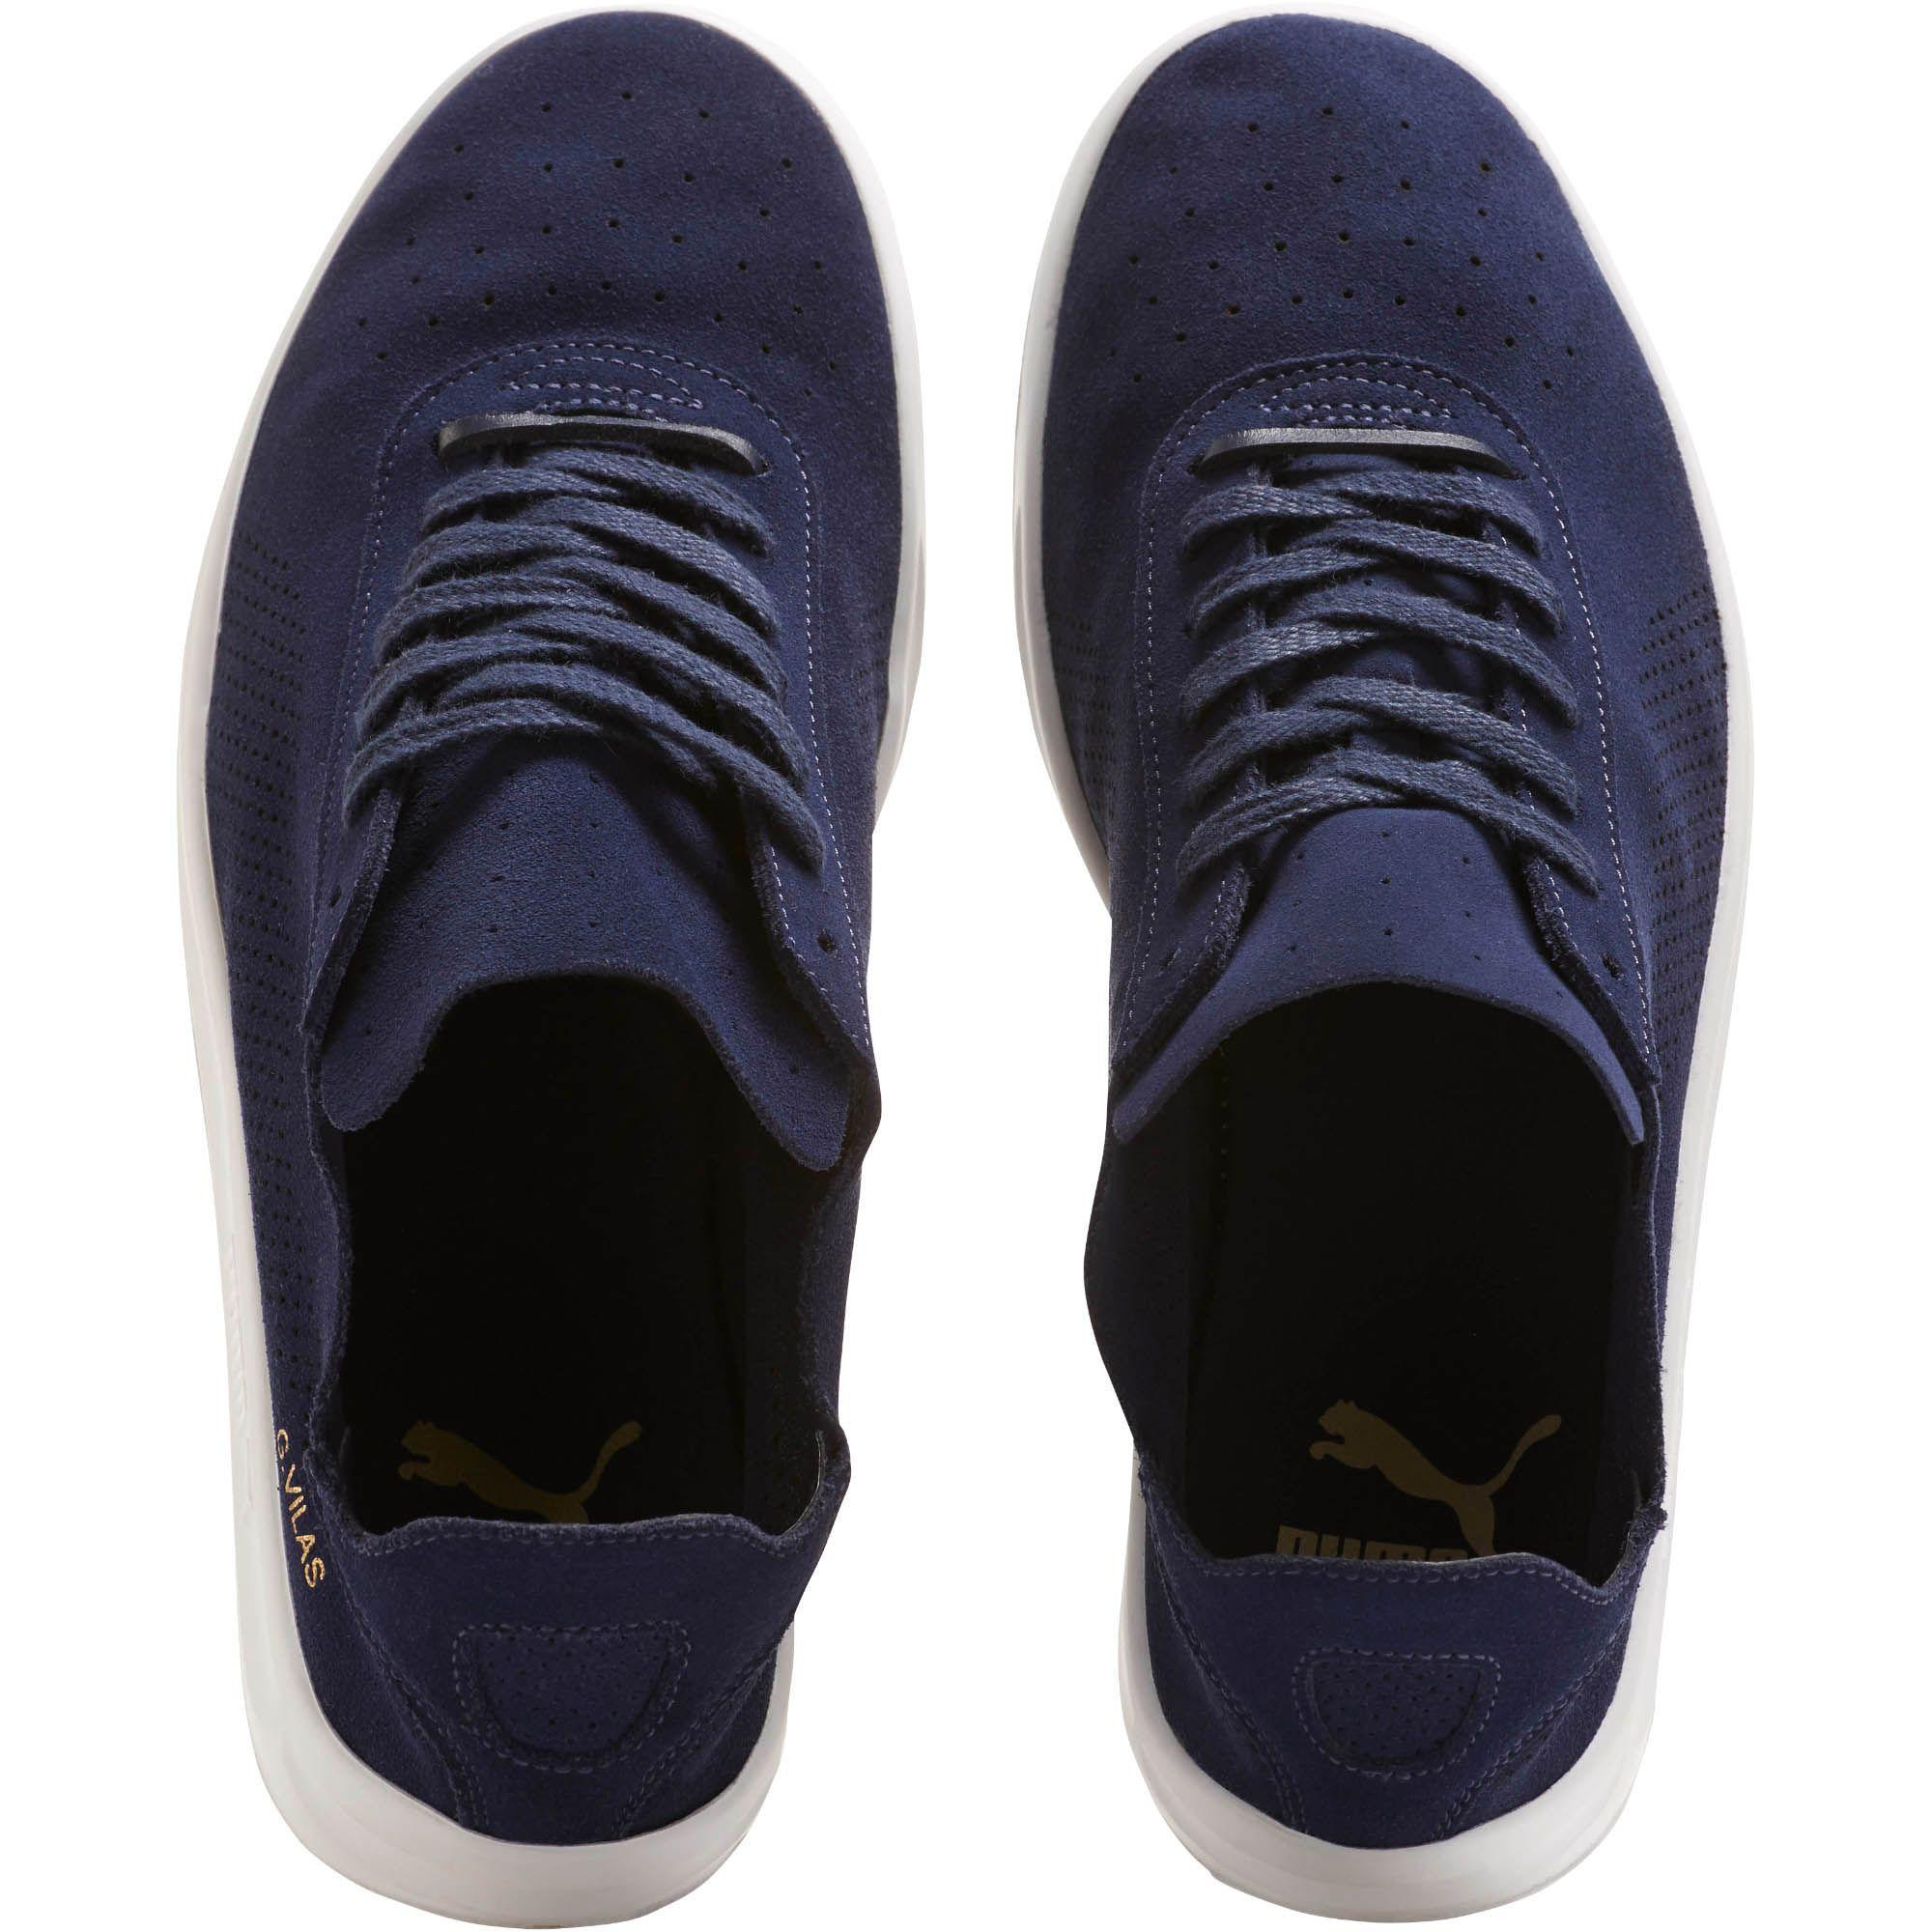 Lyst - PUMA G. Vilas Bait Sneakers in Blue for Men d6740508f